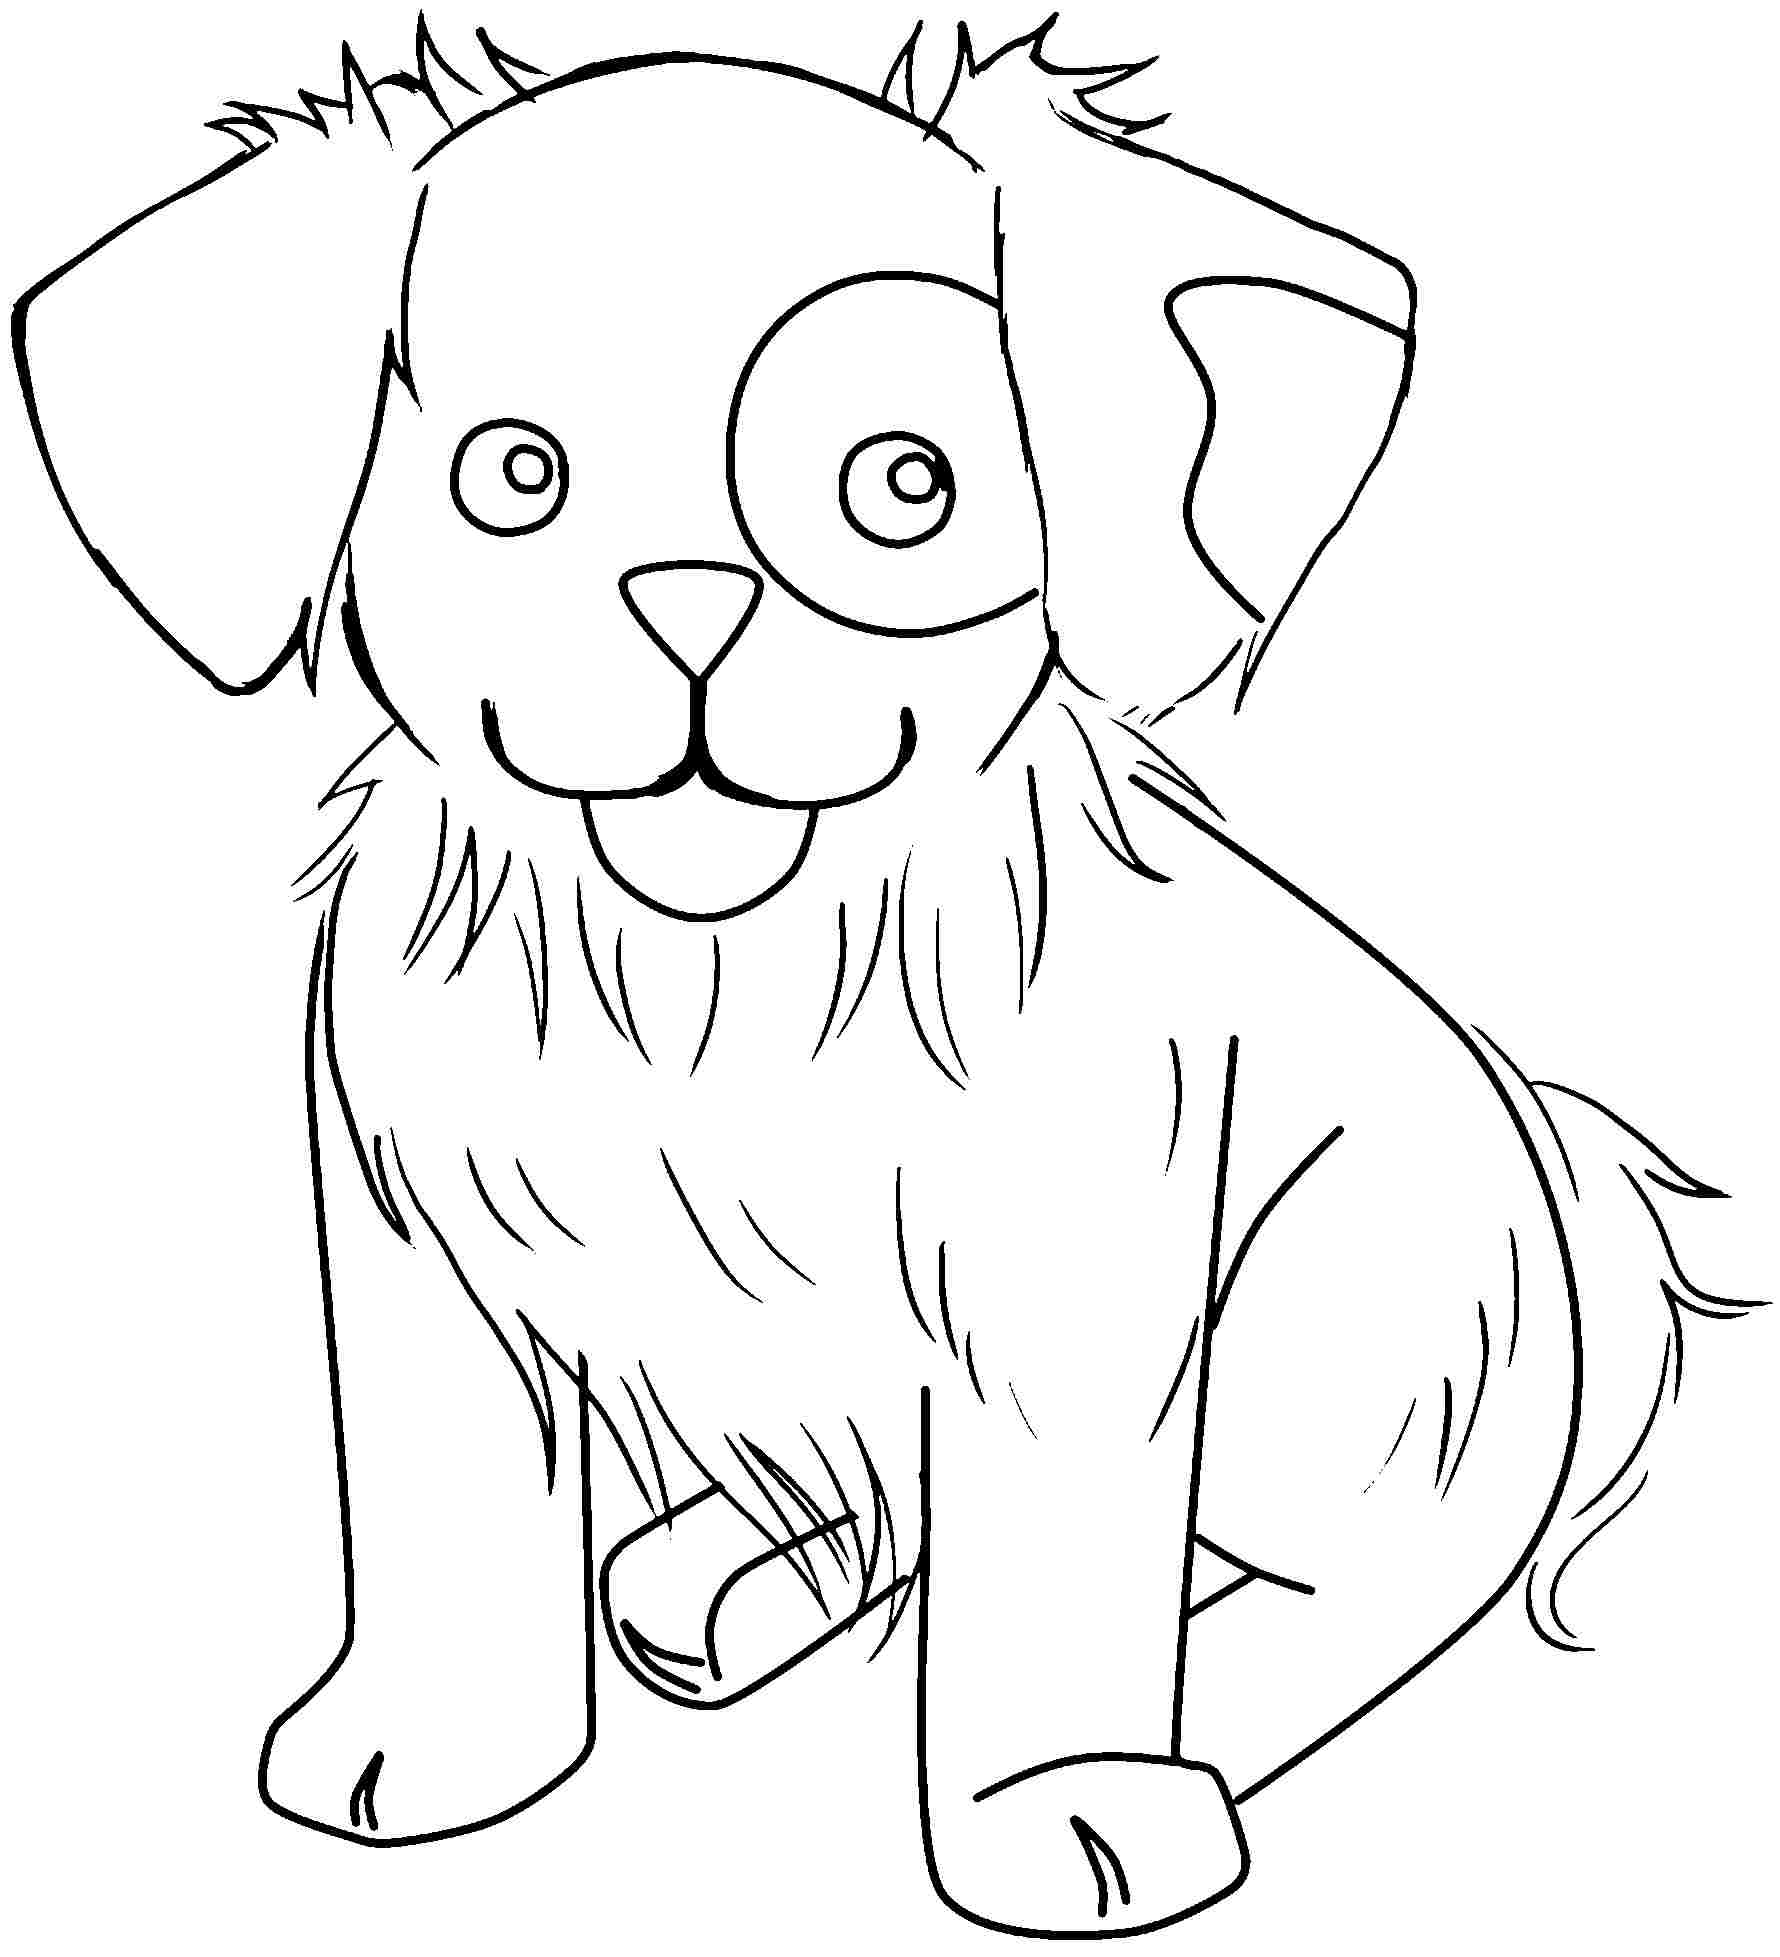 Cute Animal Coloring Pages Printable At Getdrawings Com Free For